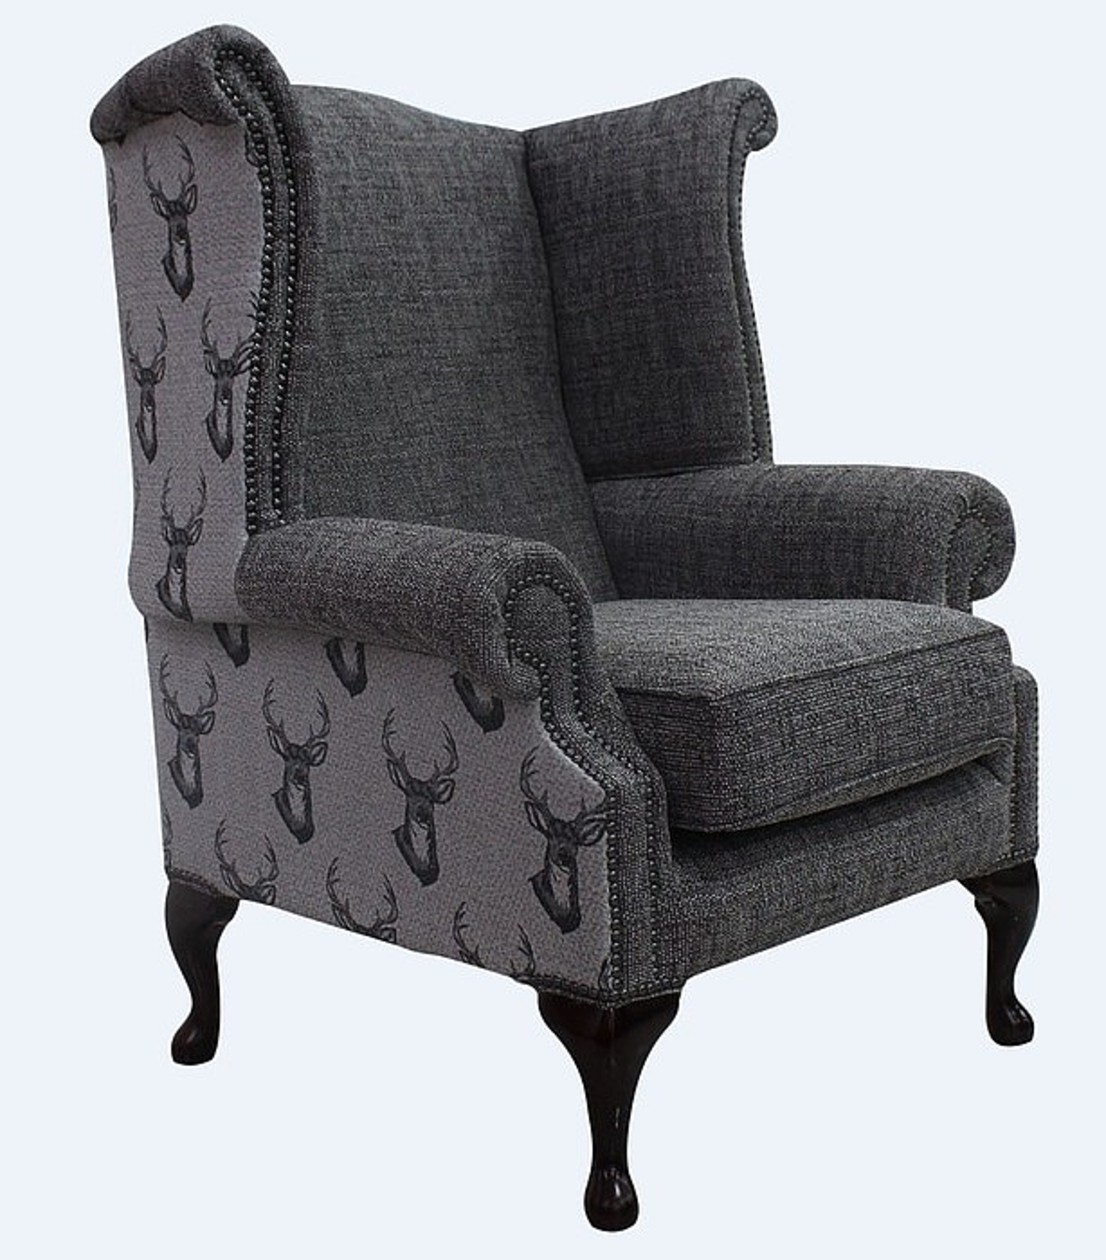 Bon Chesterfield Saxon Queen Anne High Back Wing Chair Antler Stag Charcoal Grey  Fabric